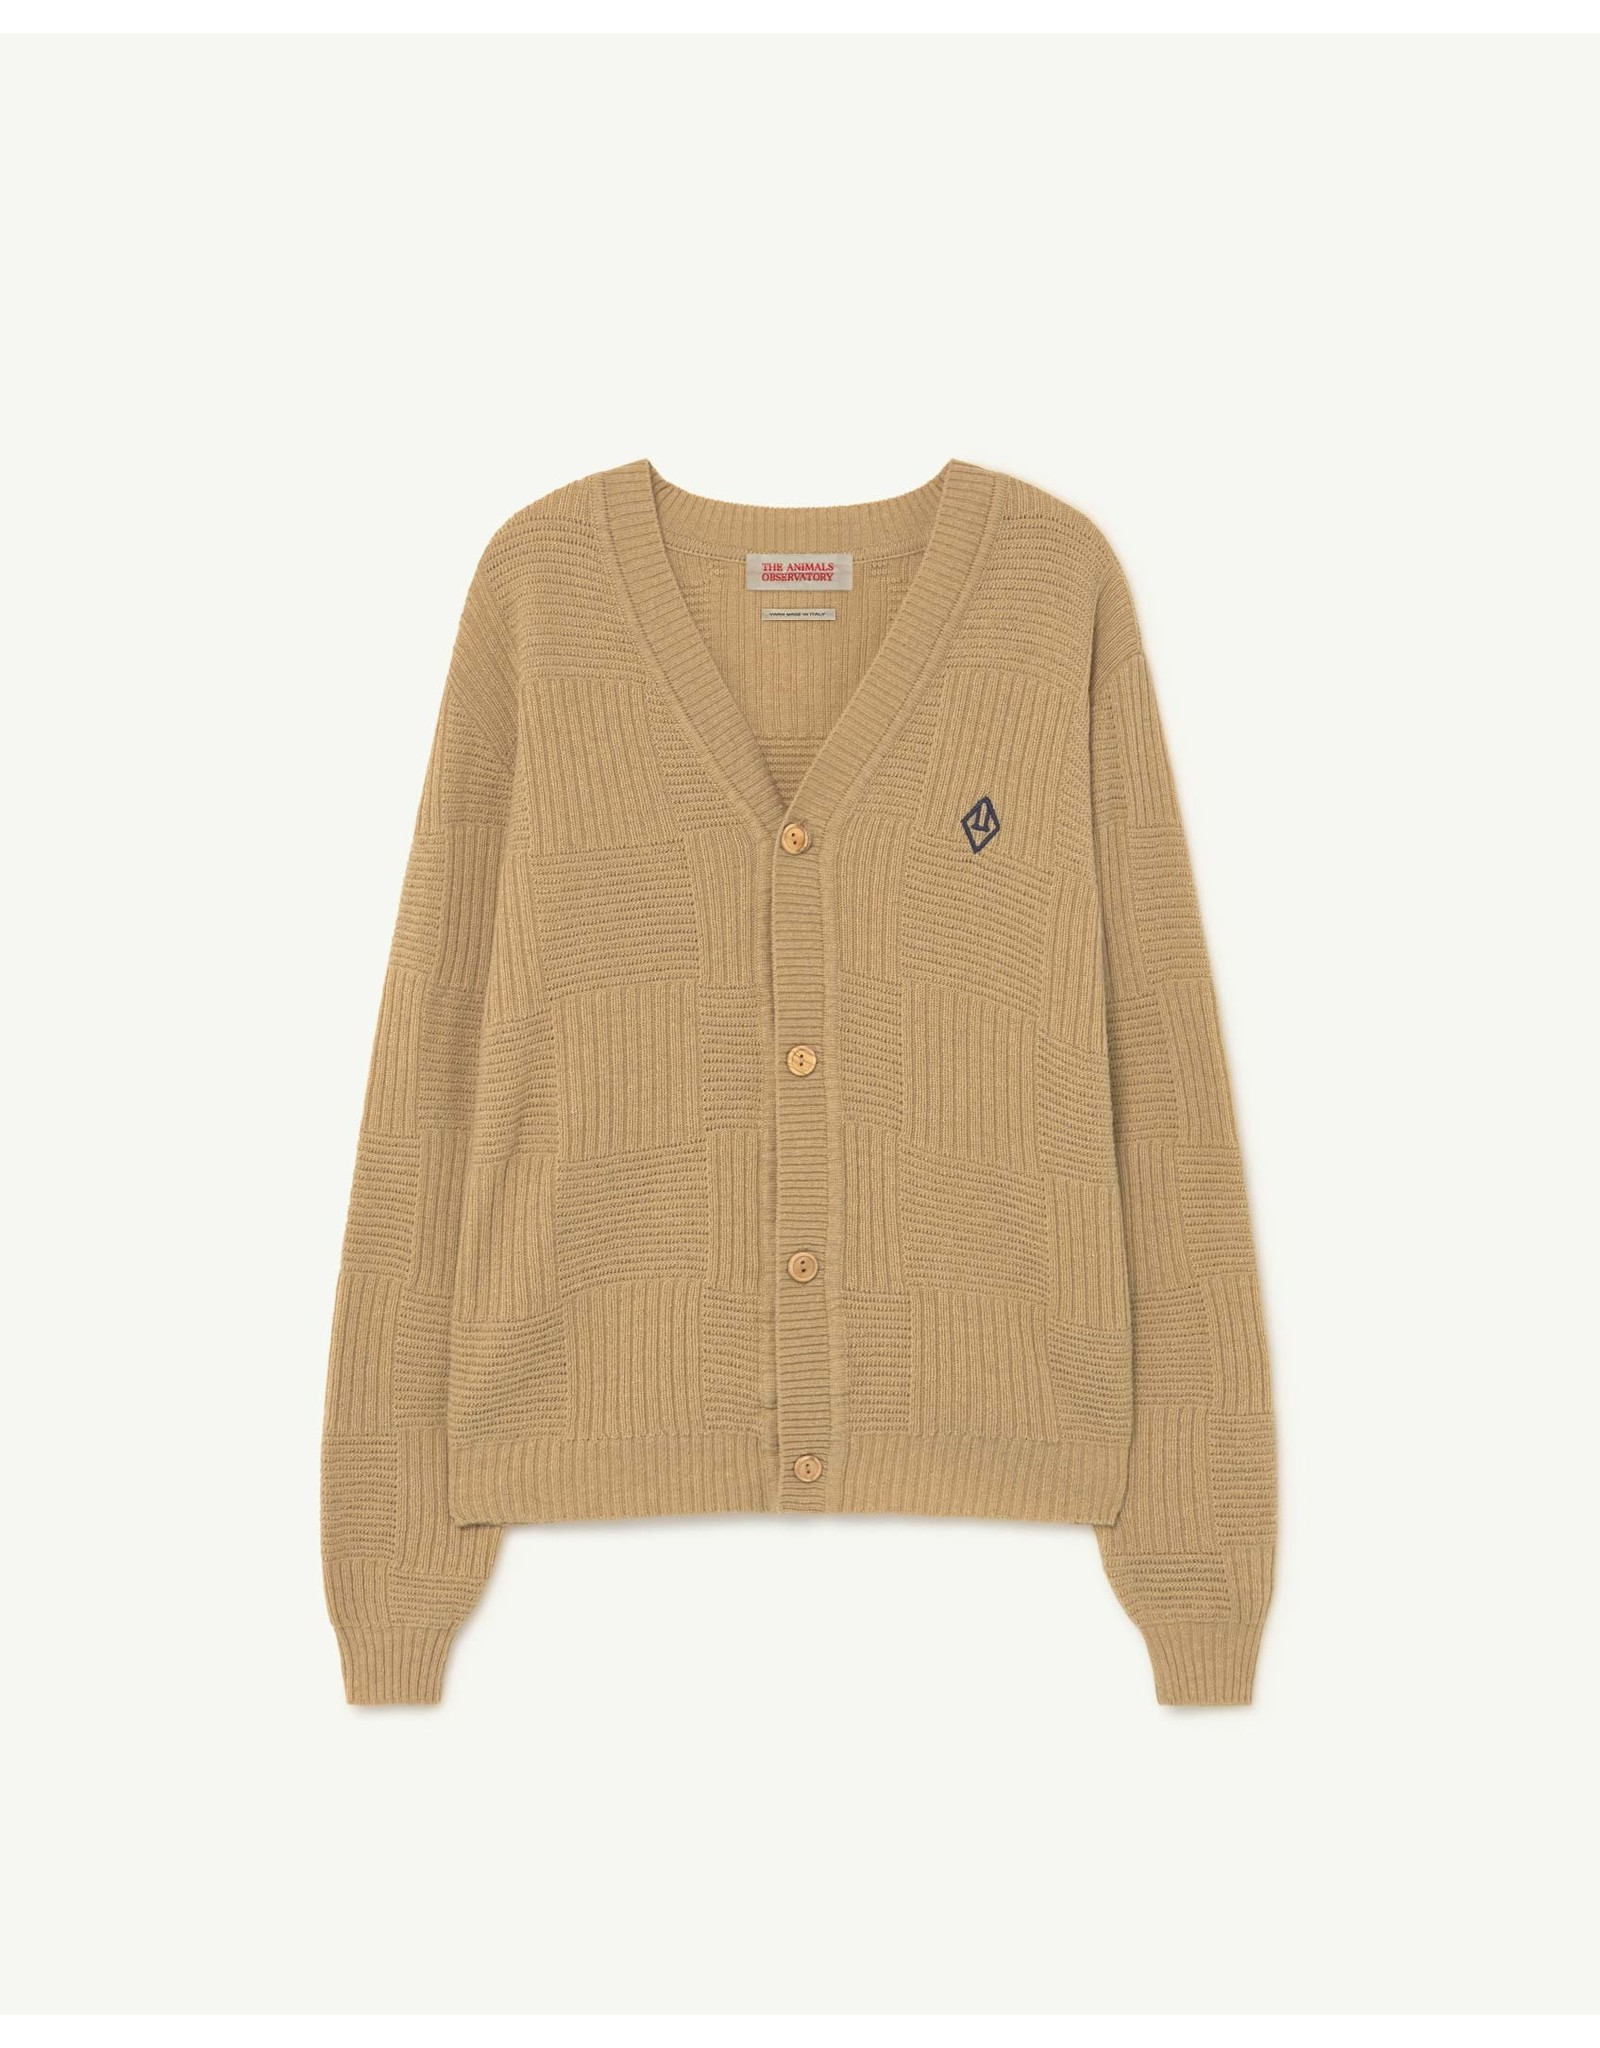 The Animals Observatory  Racoon Kids Cardigan